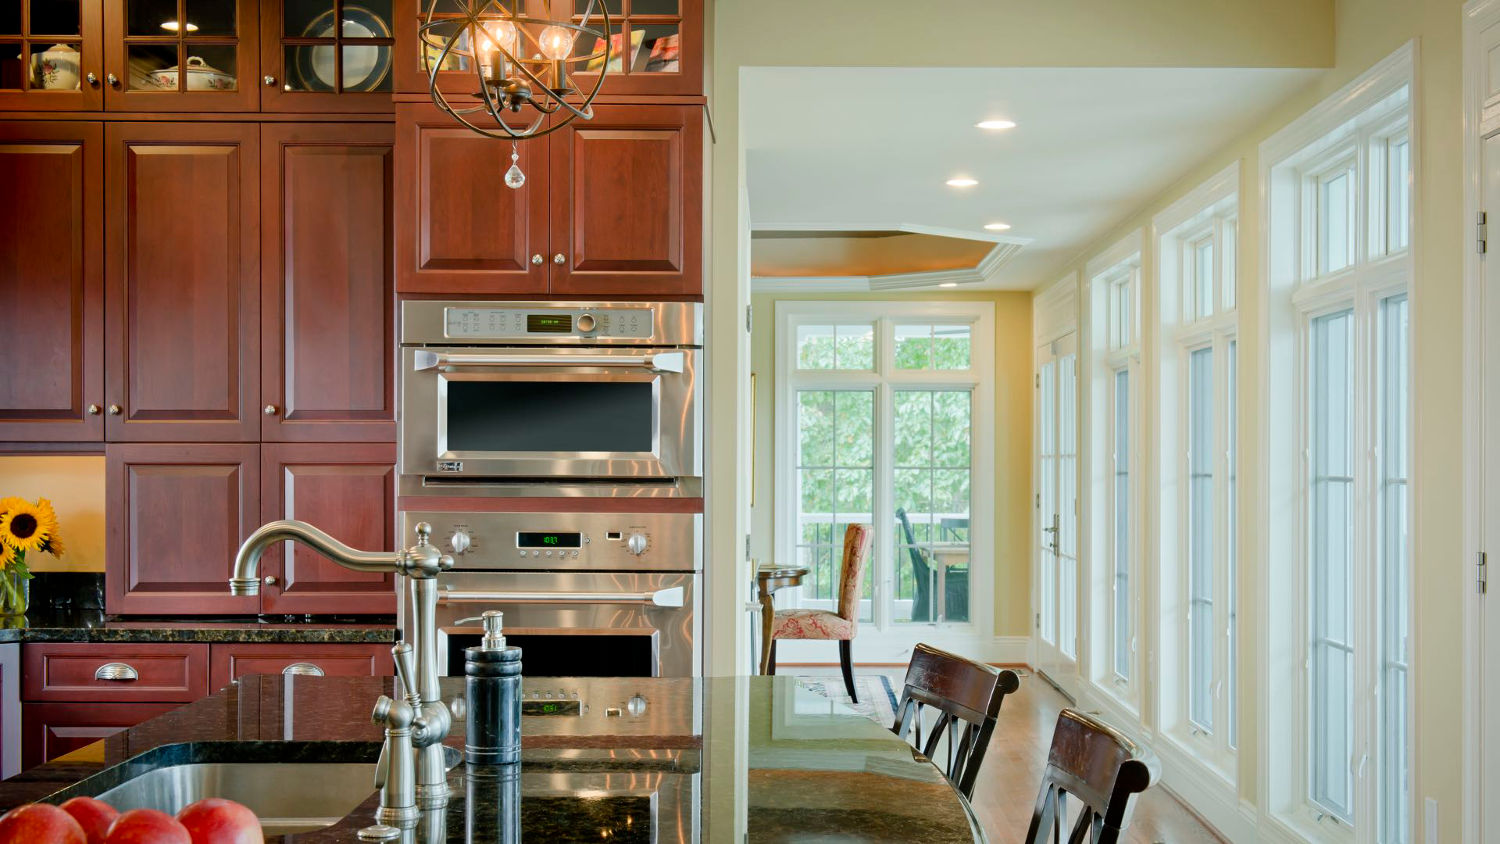 Bright kitchen renovation in whole house remodel of country estate in Baltimore. Wall of windows open up breathtaking rear views